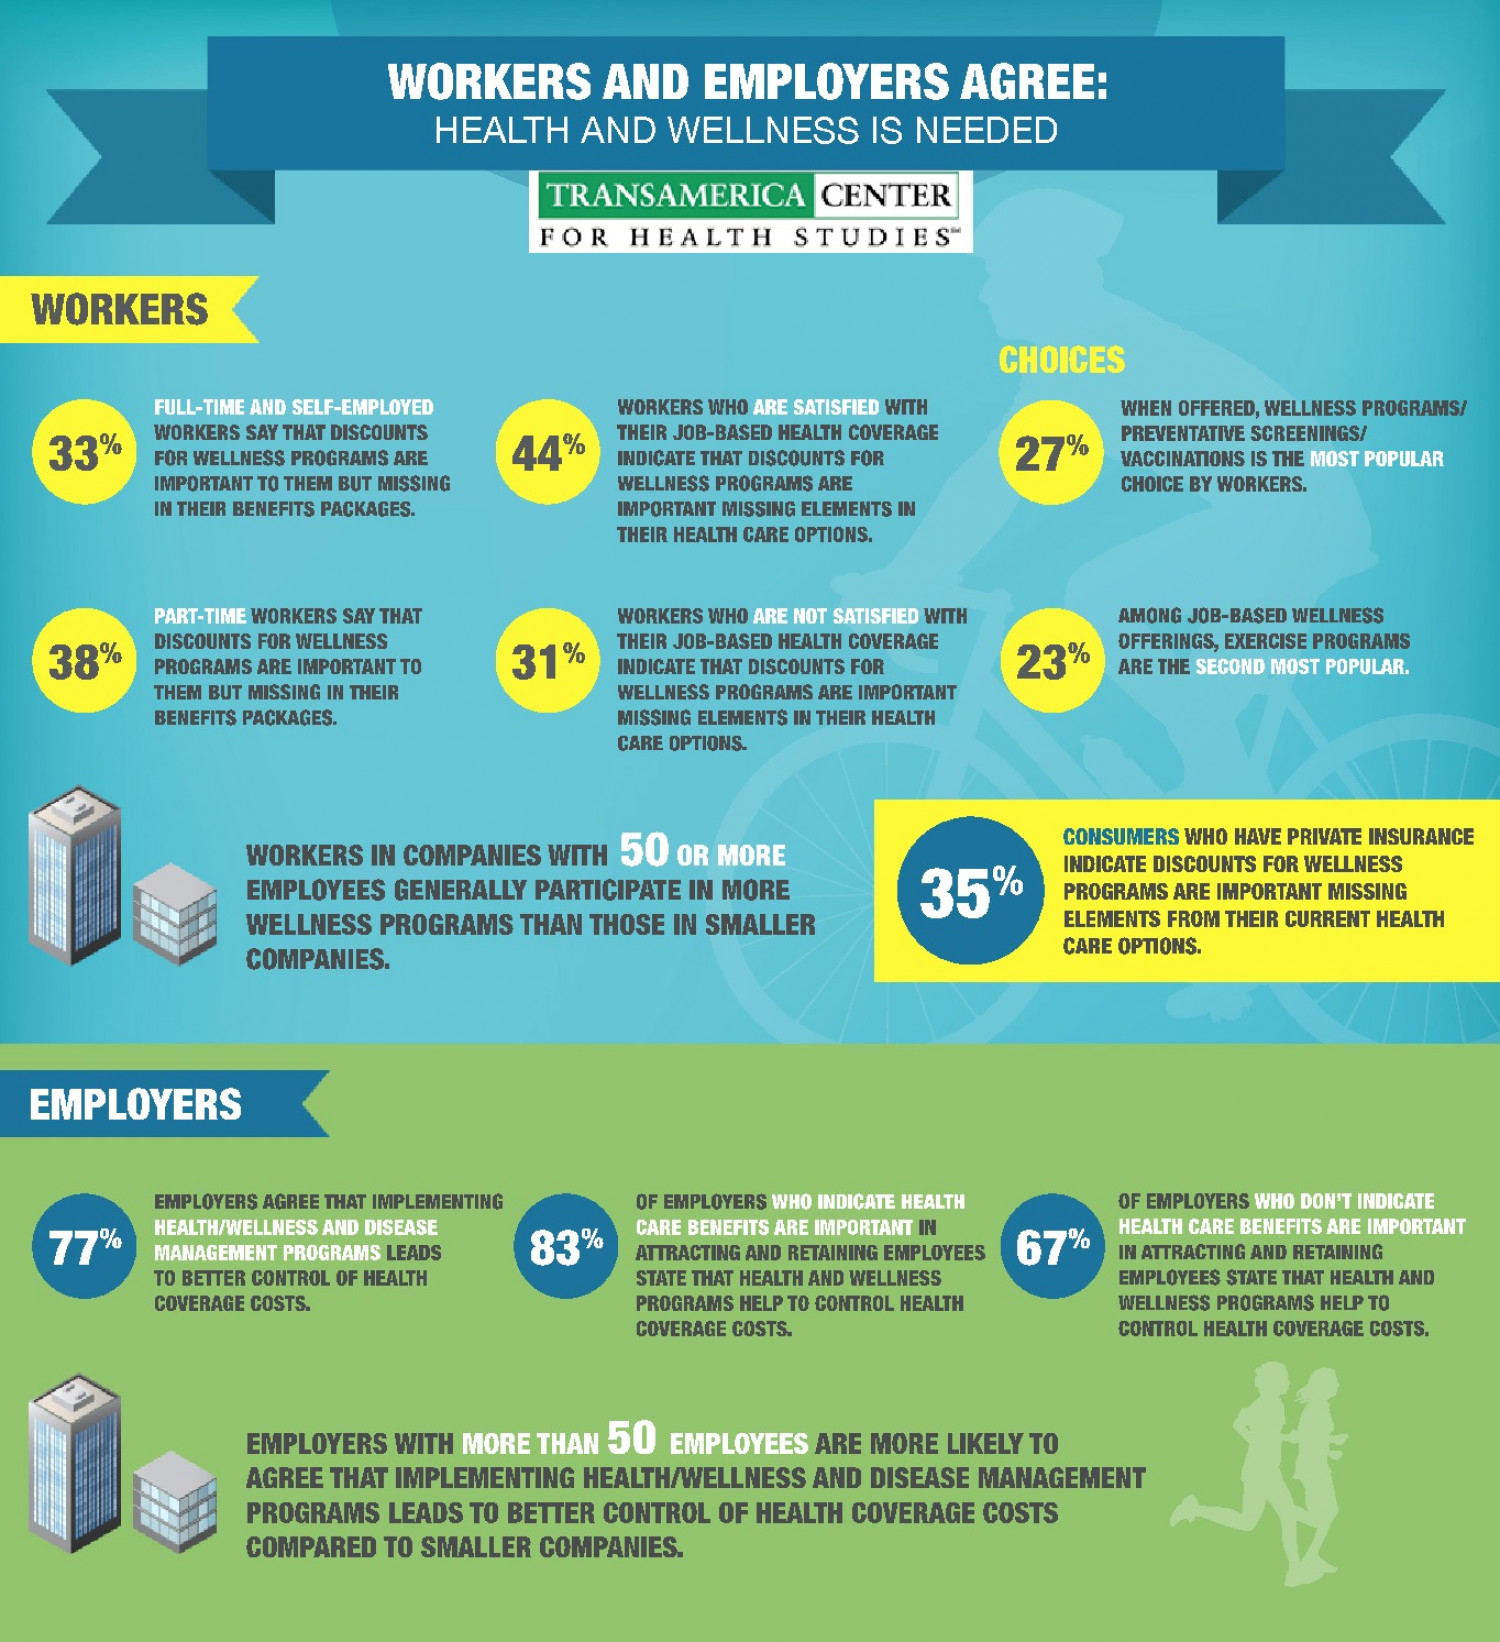 Transamerica Center for Health Studies Health and Wellness Study Infographic